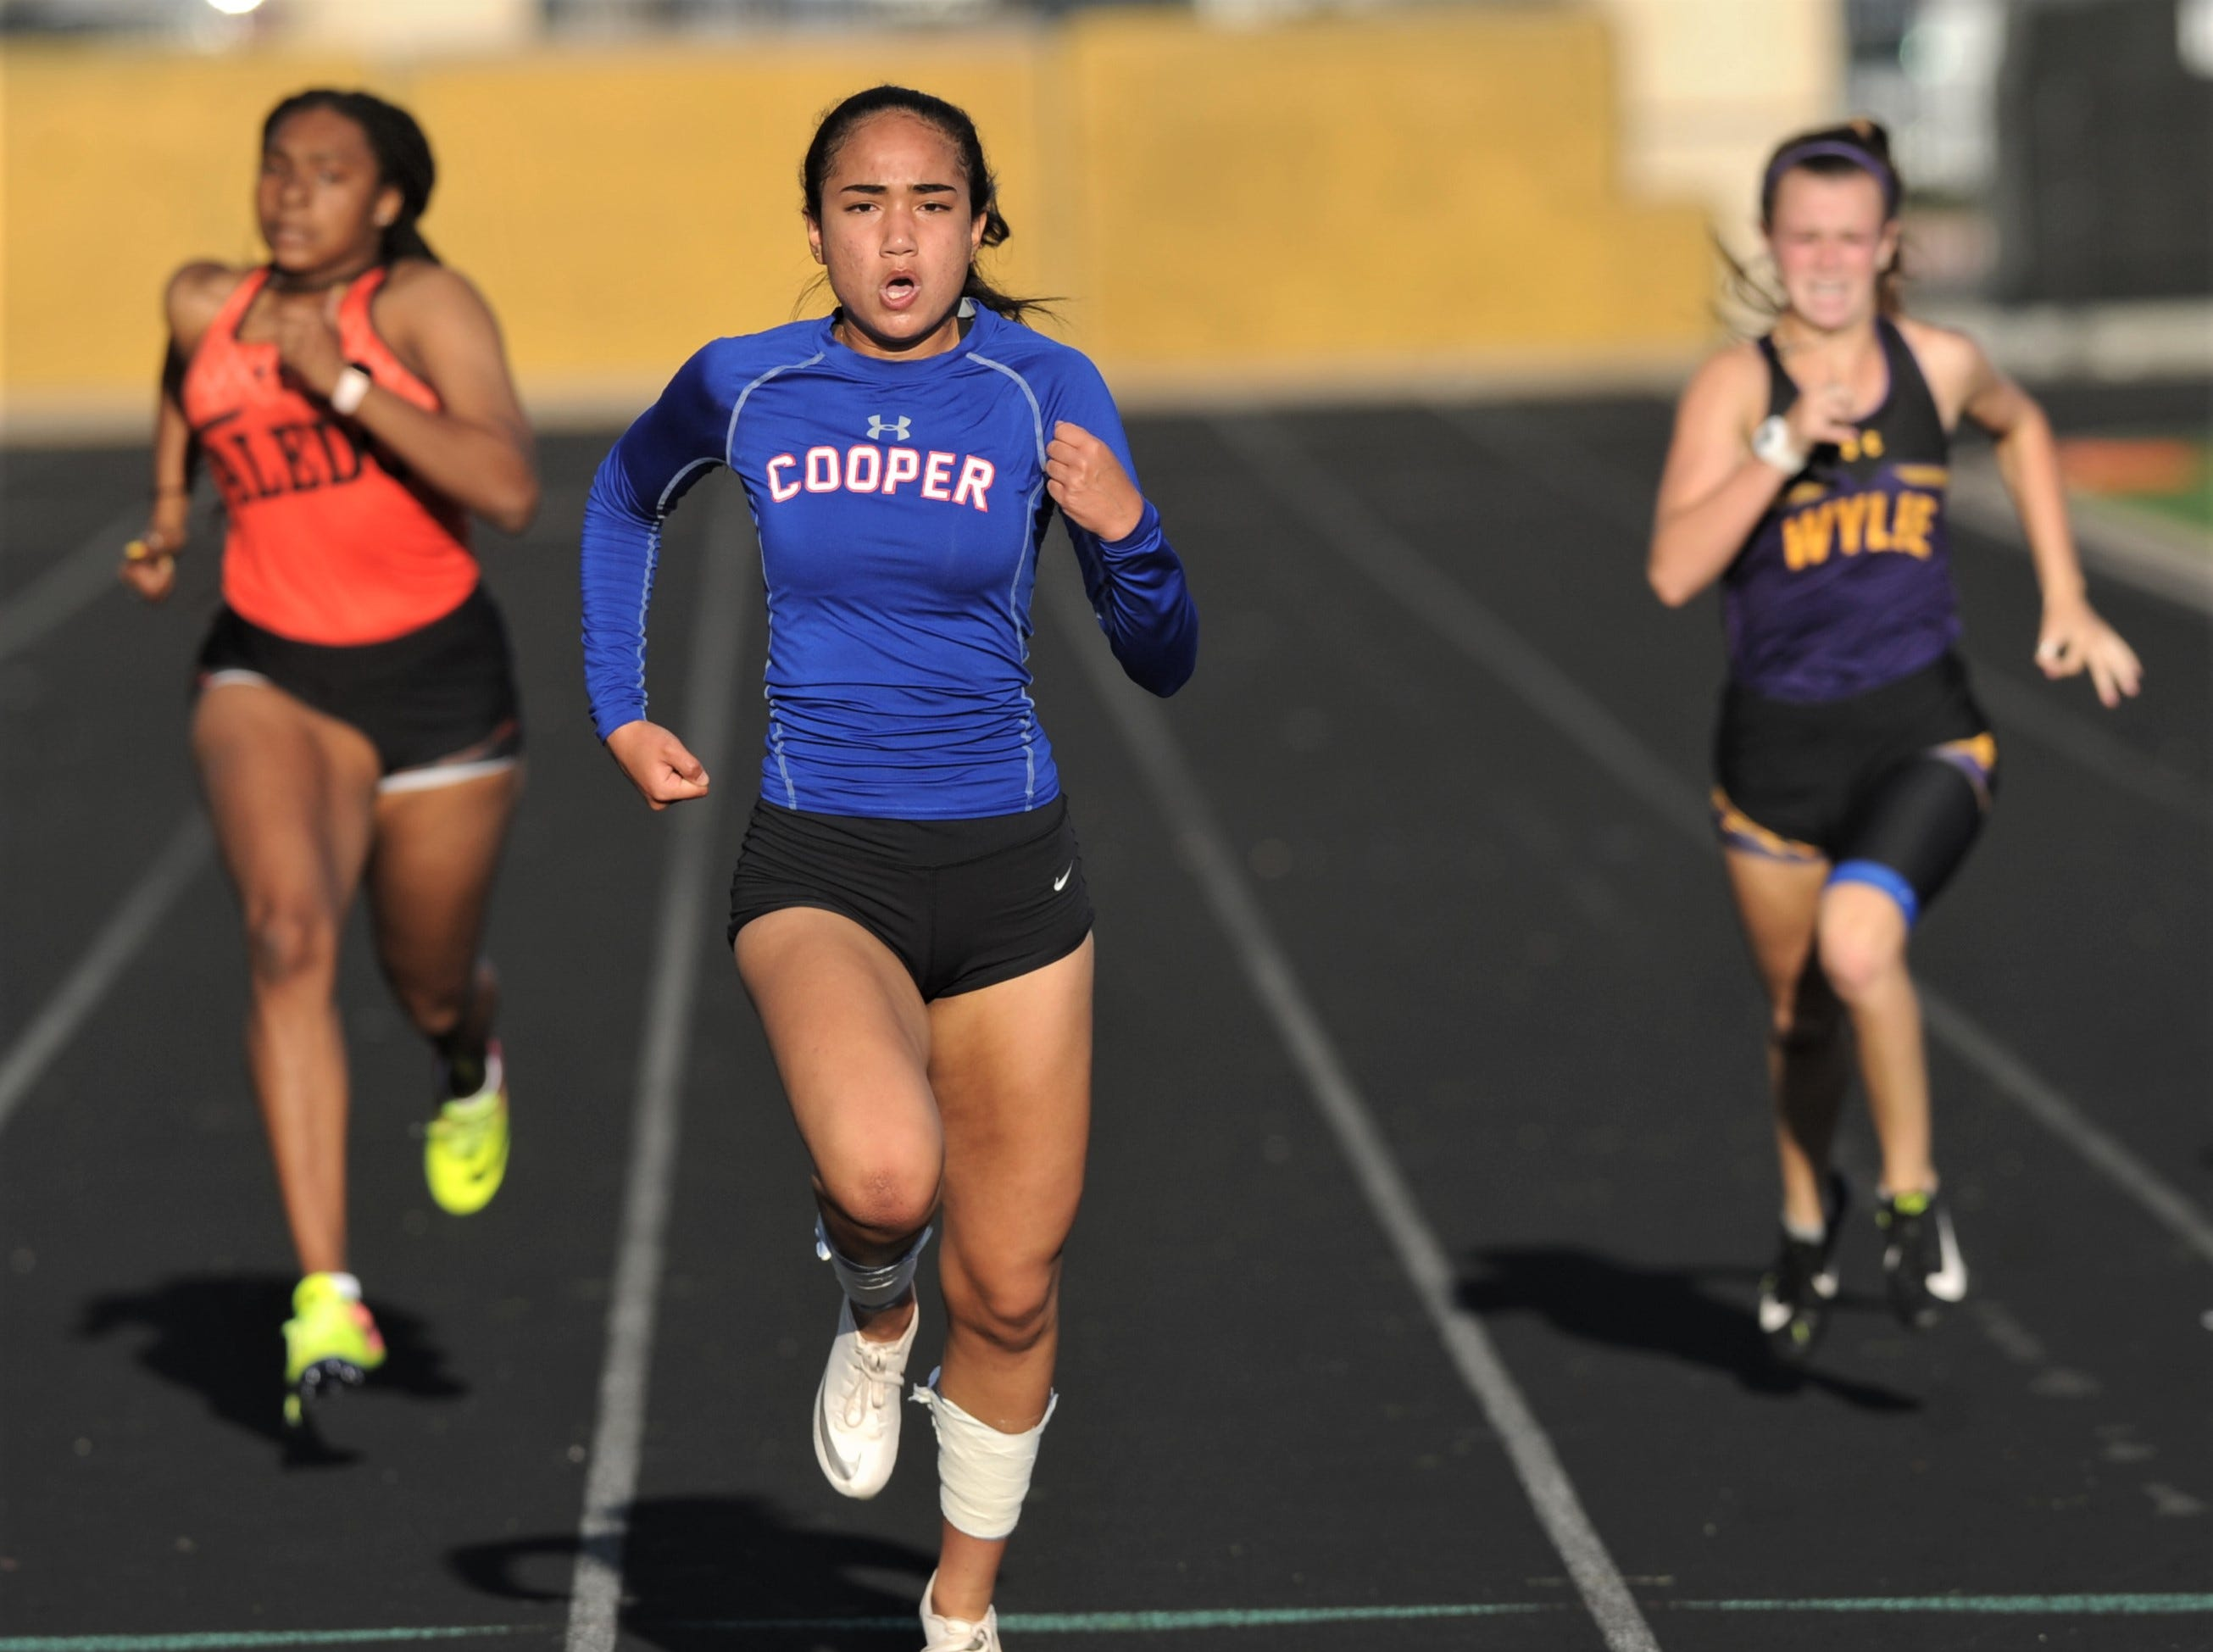 Cooper's Lexa Garcia, center, closes in on the finish line in the 200 meters while being chased by Aledo's Lydia Lawrence, left, and Wylie's Maci Kirk. Garcia won the event in 26.60 seconds. Lawrence was second (27.60), and Kirk was third (27.62) at the District 4-5A track and field meet on Thursday, April 3, 2019, at Aledo's Bearcat Stadium.